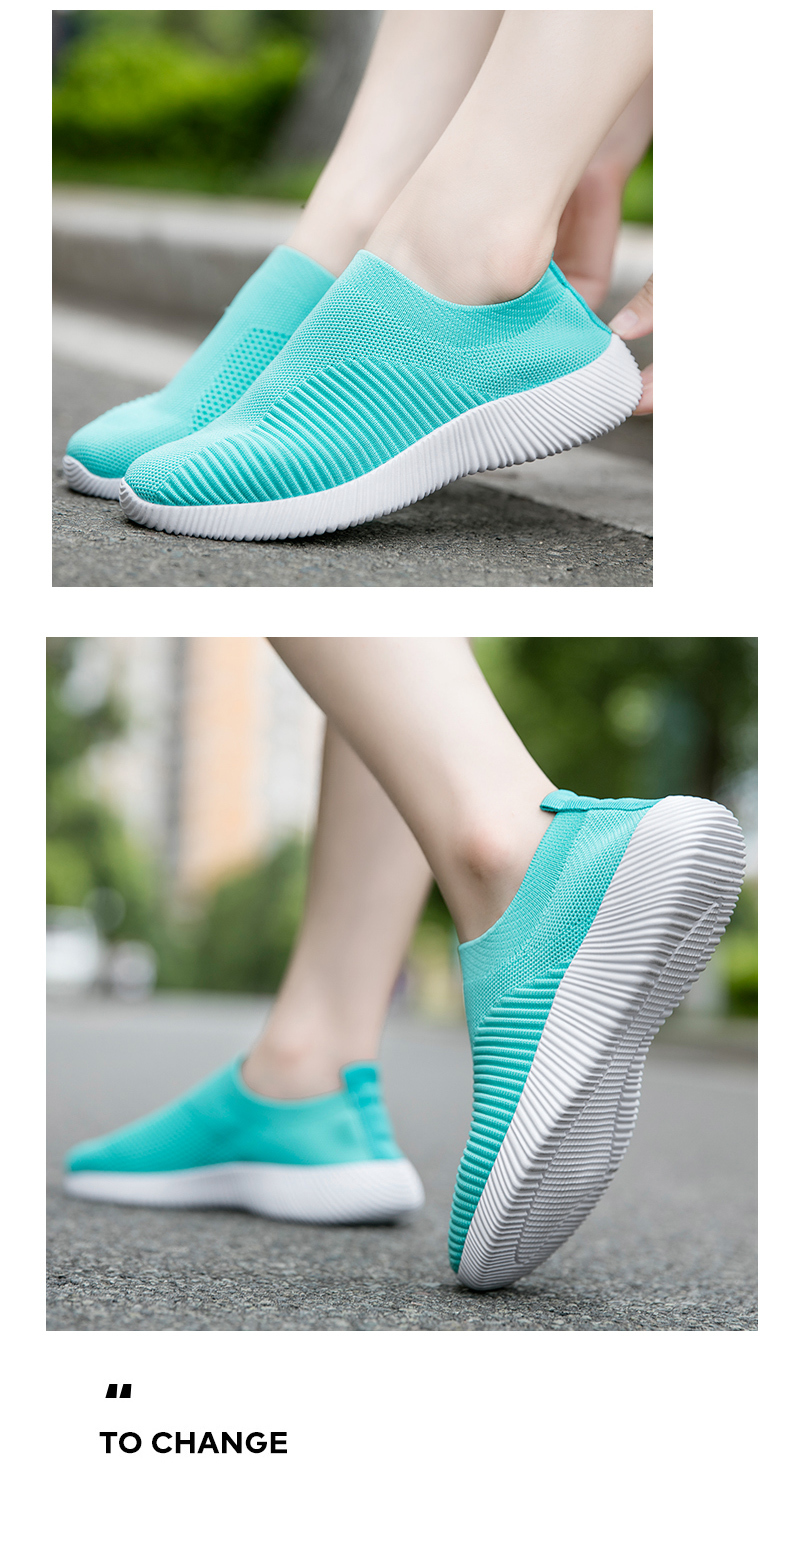 Slip On Flying Knit Women Fashion Sneakers Breathable Flat Heel Casual Shoes Round Toe Low Top Women Shoes XU034 (12)